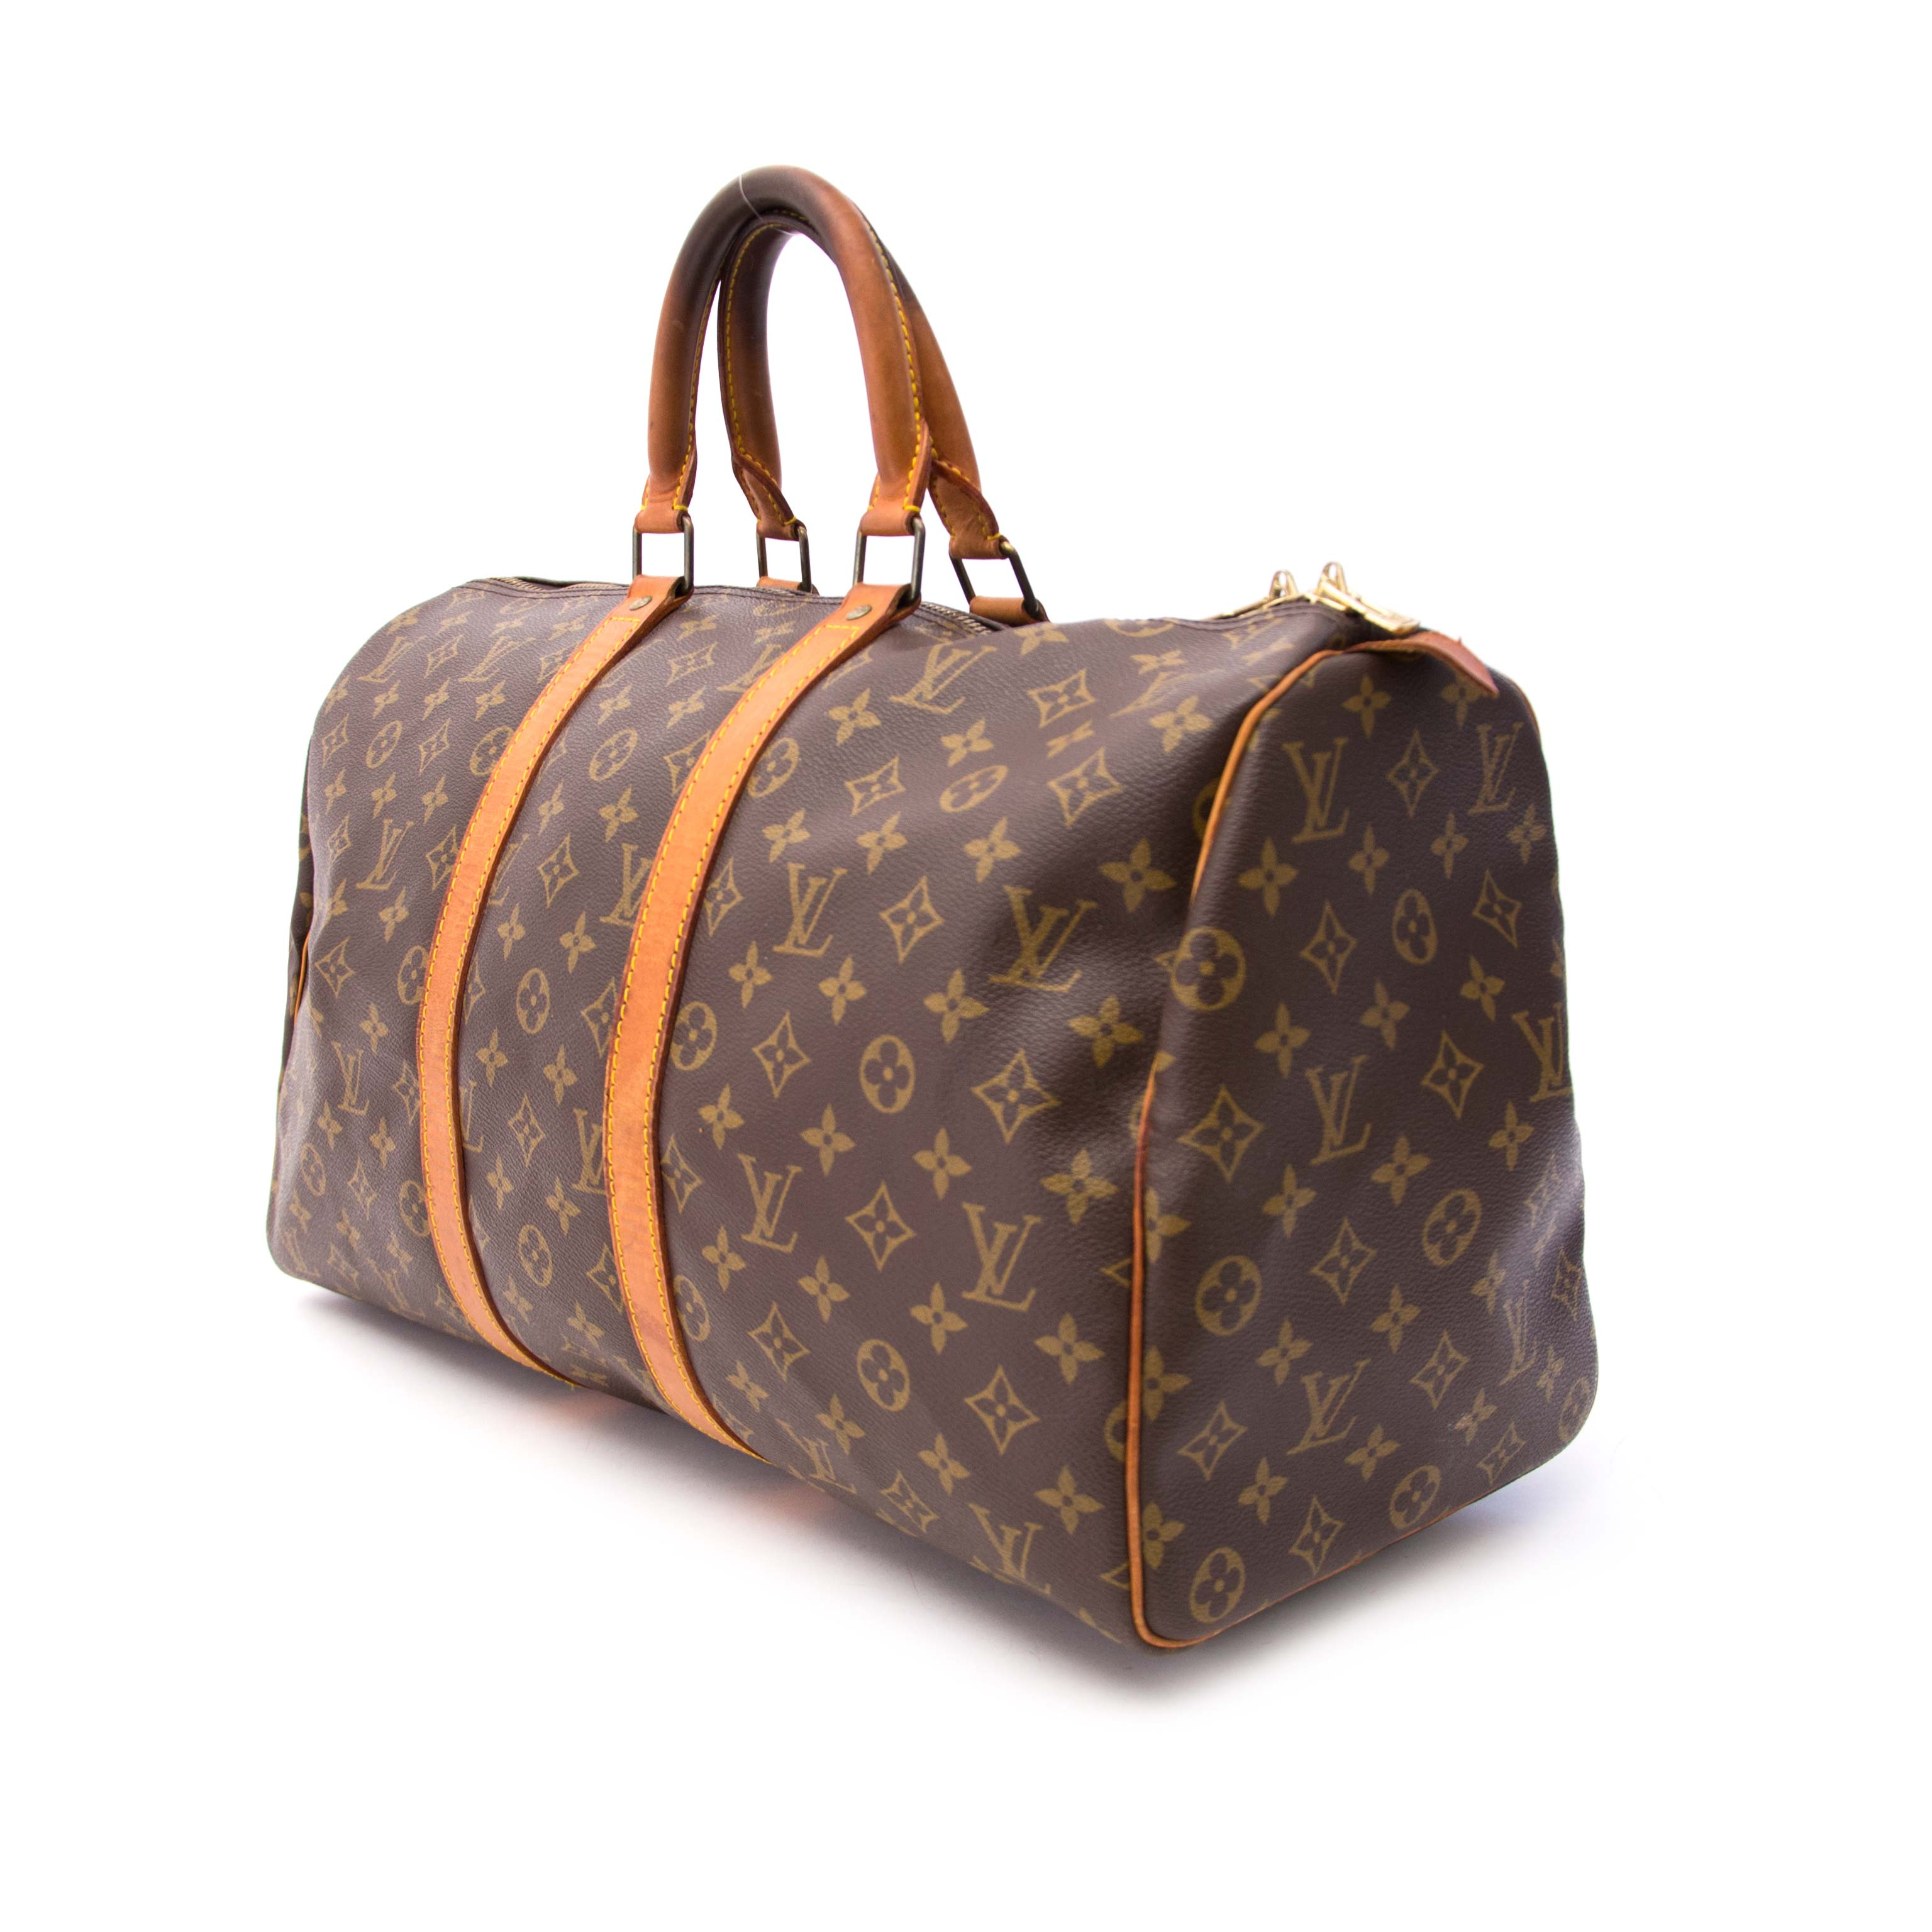 Buy authentic secondhand louis vuitton keepall 45